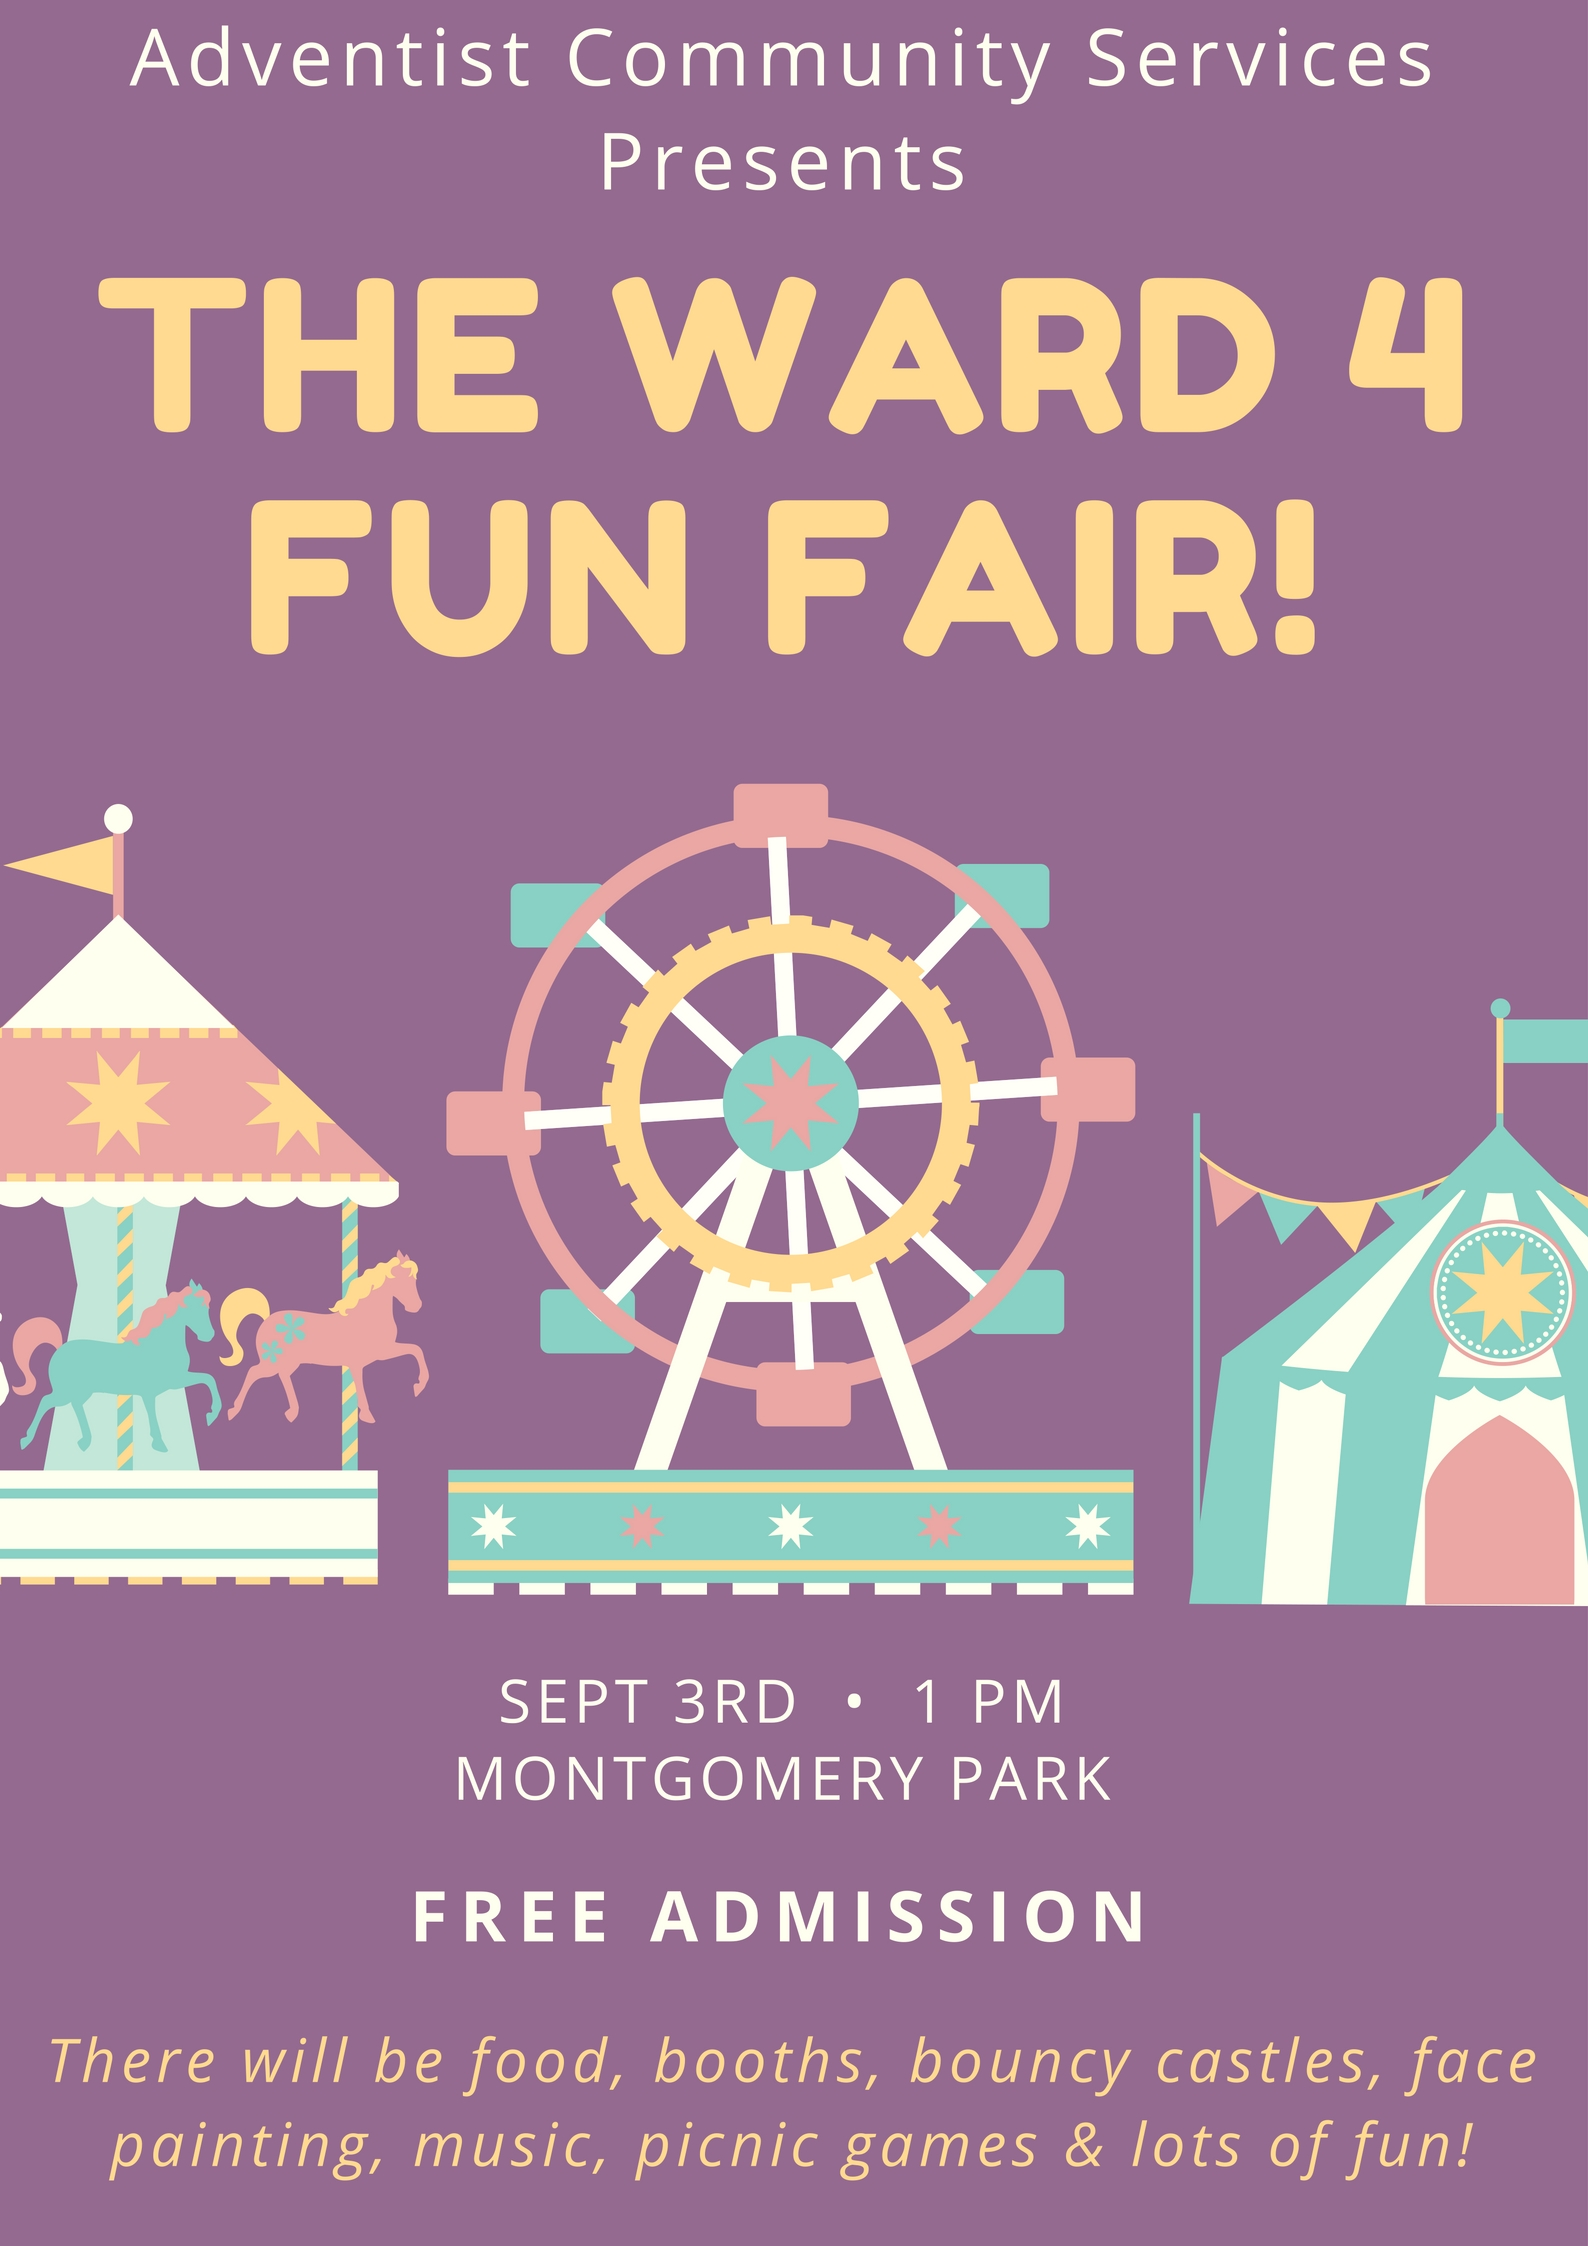 Ward 4 Fun Fair